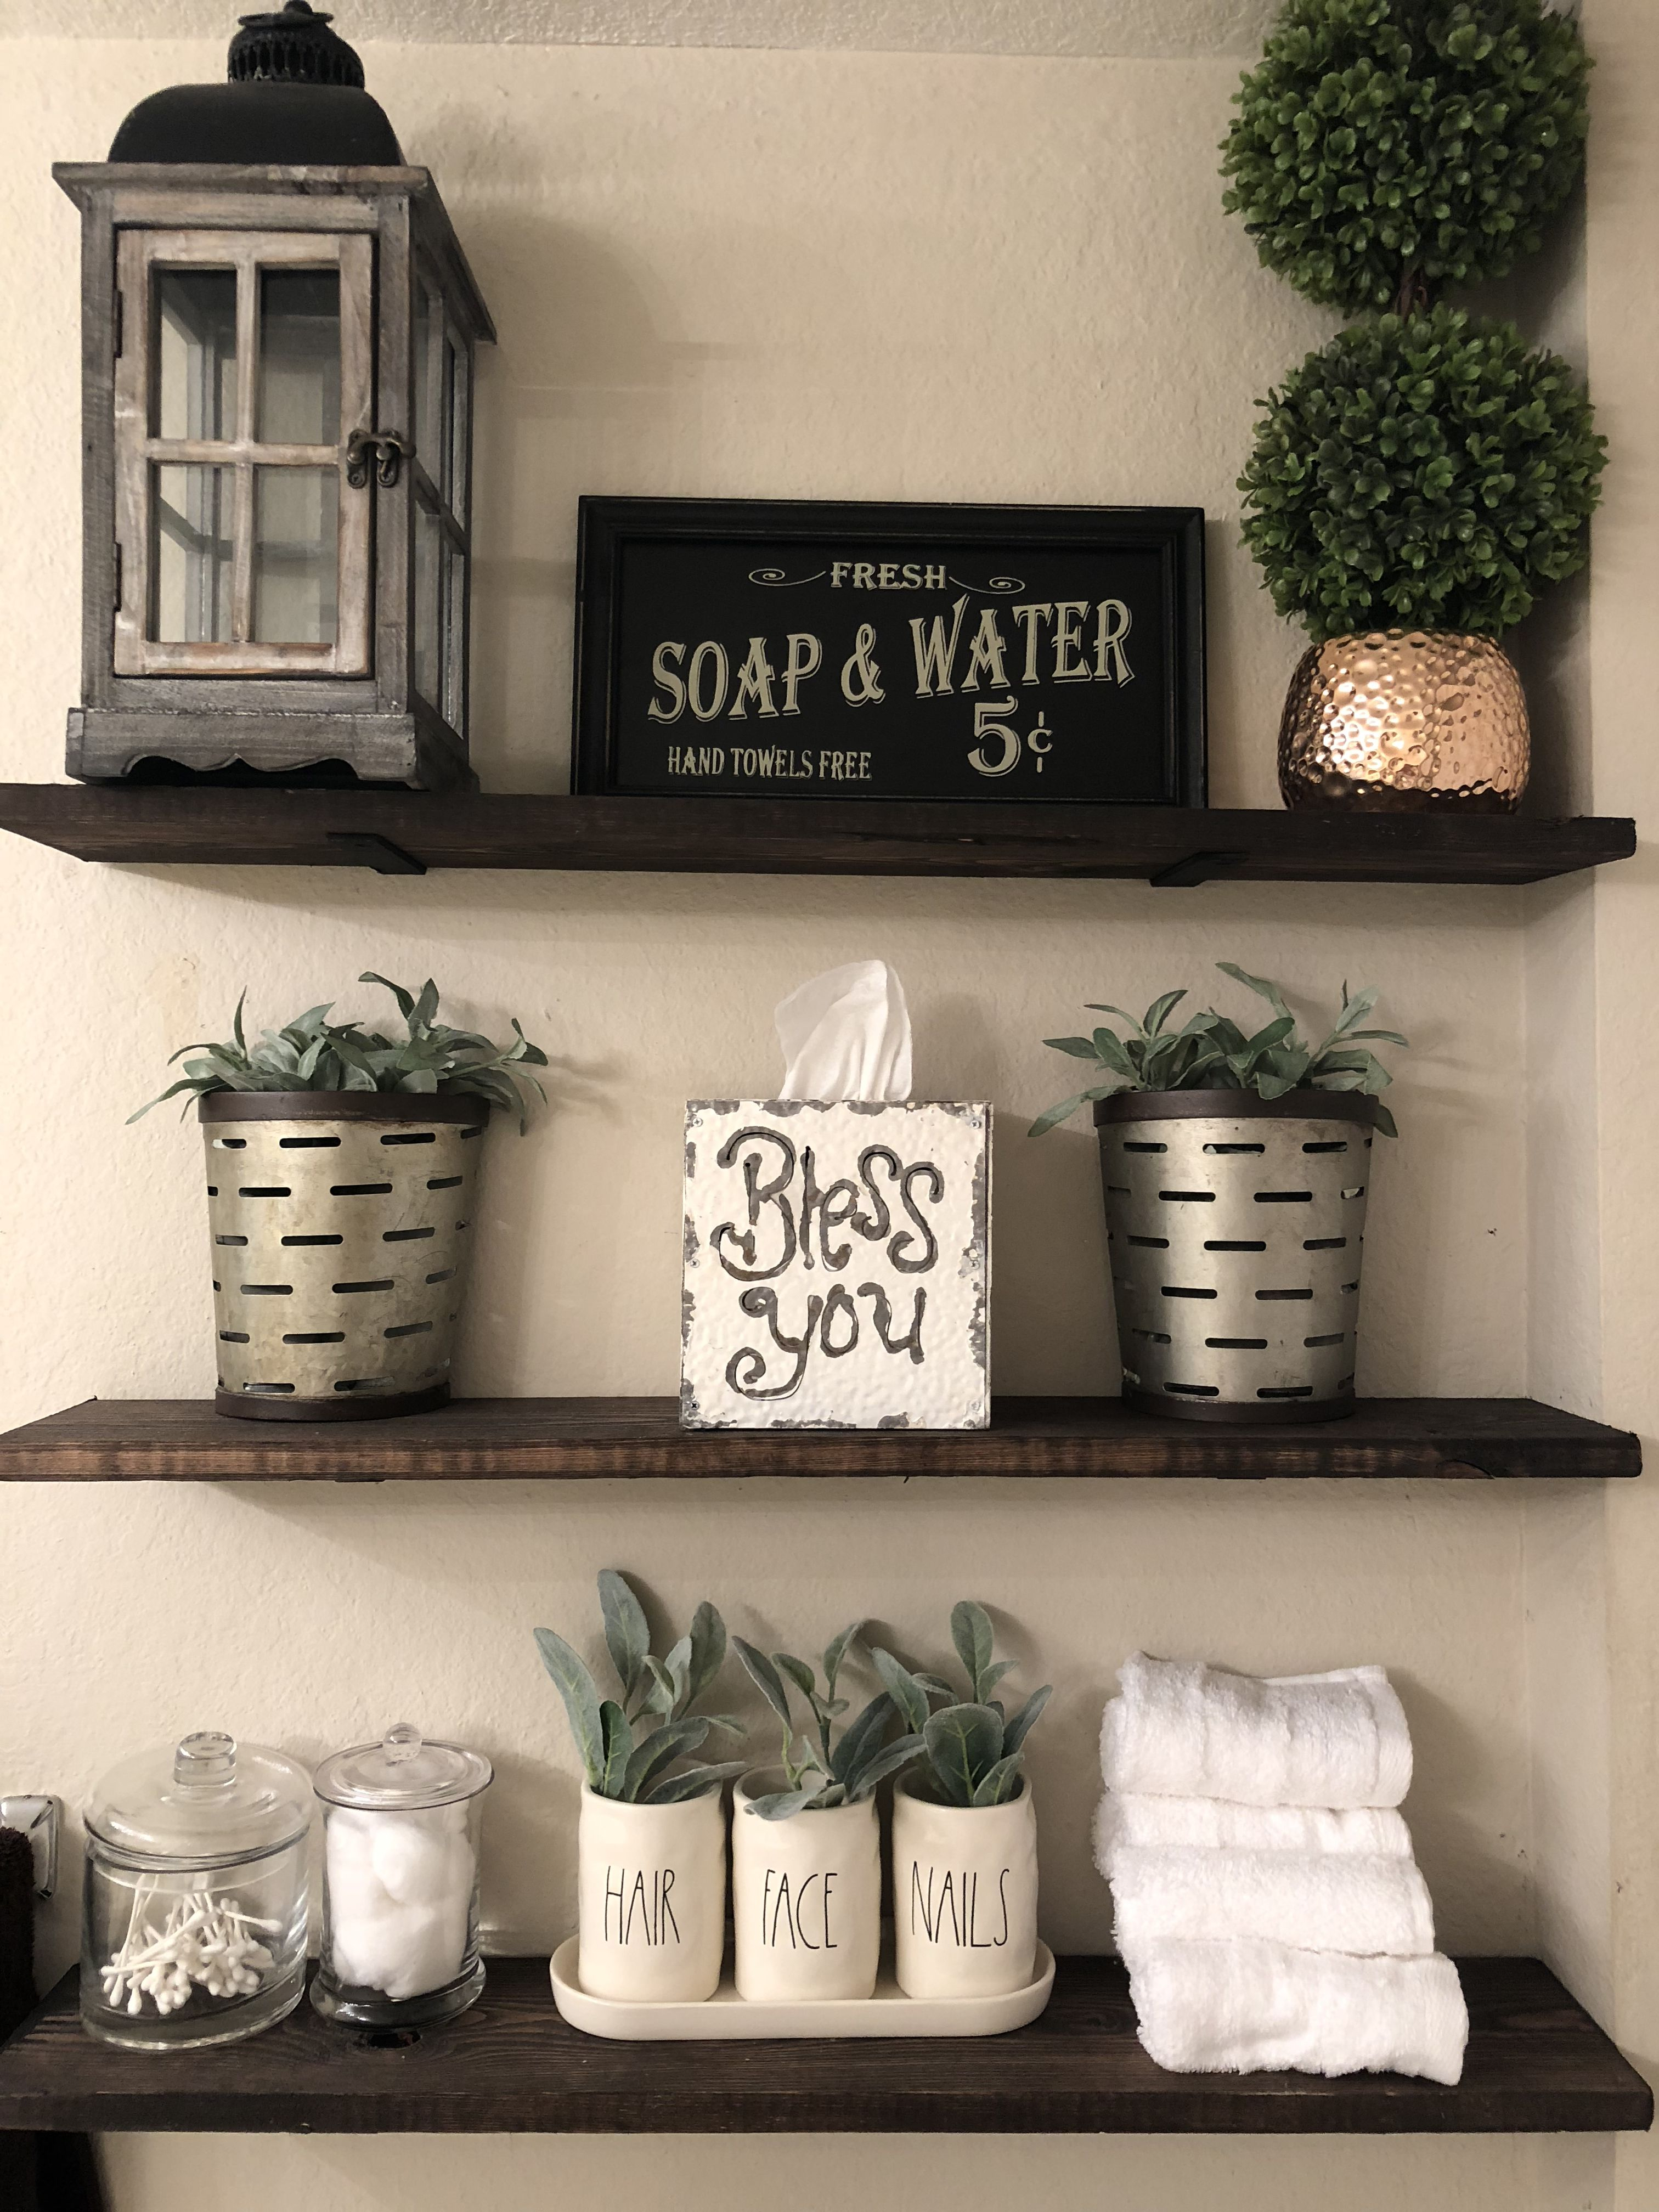 My Bathroom Decor Restroom Decor Diy Bathroom Decor Small Bathroom Decor